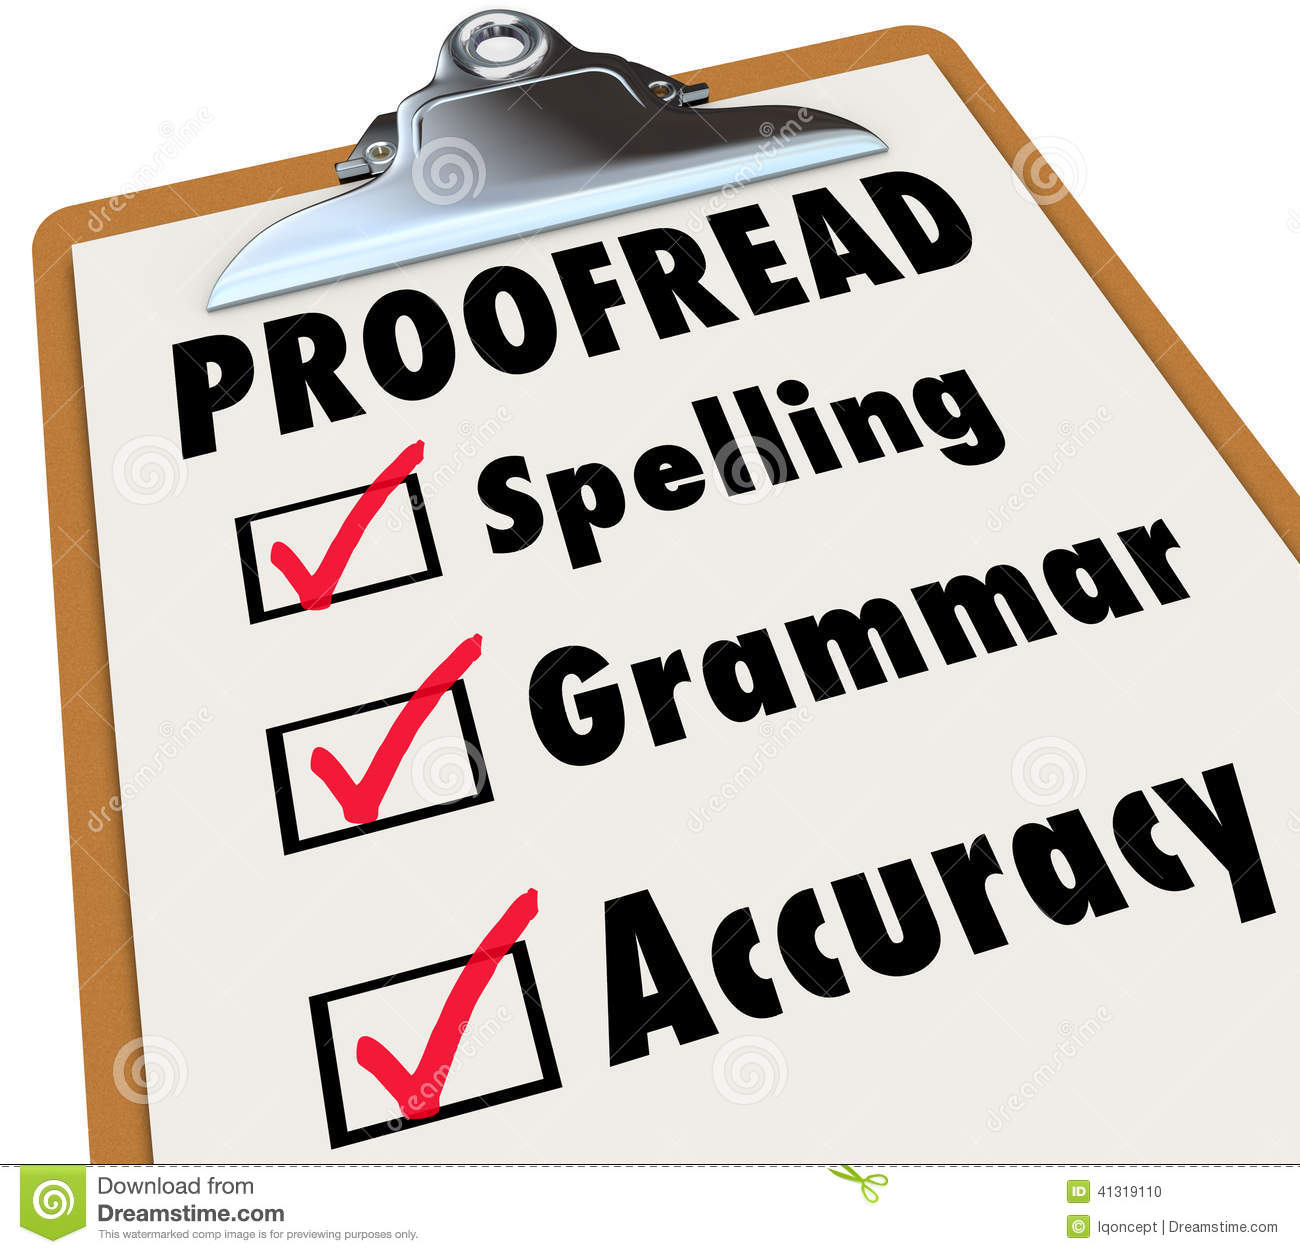 002 Proofread My Essay Example Clipboard Checklist Spelling Grammar Accuracy Checked Boxes Next To Words As Things Editor Reviews Remarkable Promo Code Online For Free Full